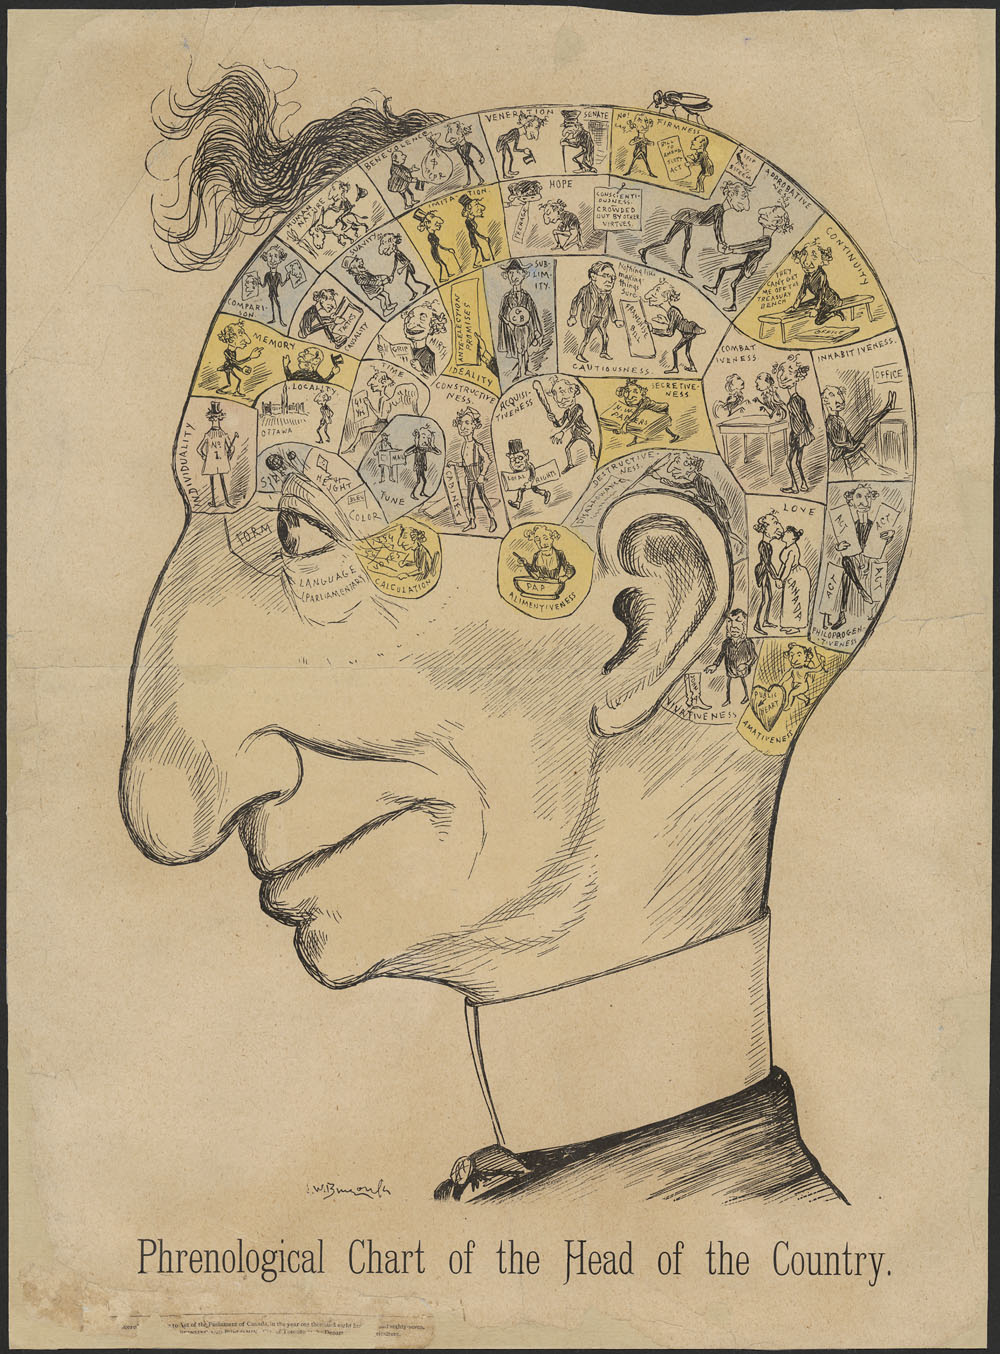 Phrenological Chart of the Head of the Country [Sir John A. Macdonald]  (item 2)